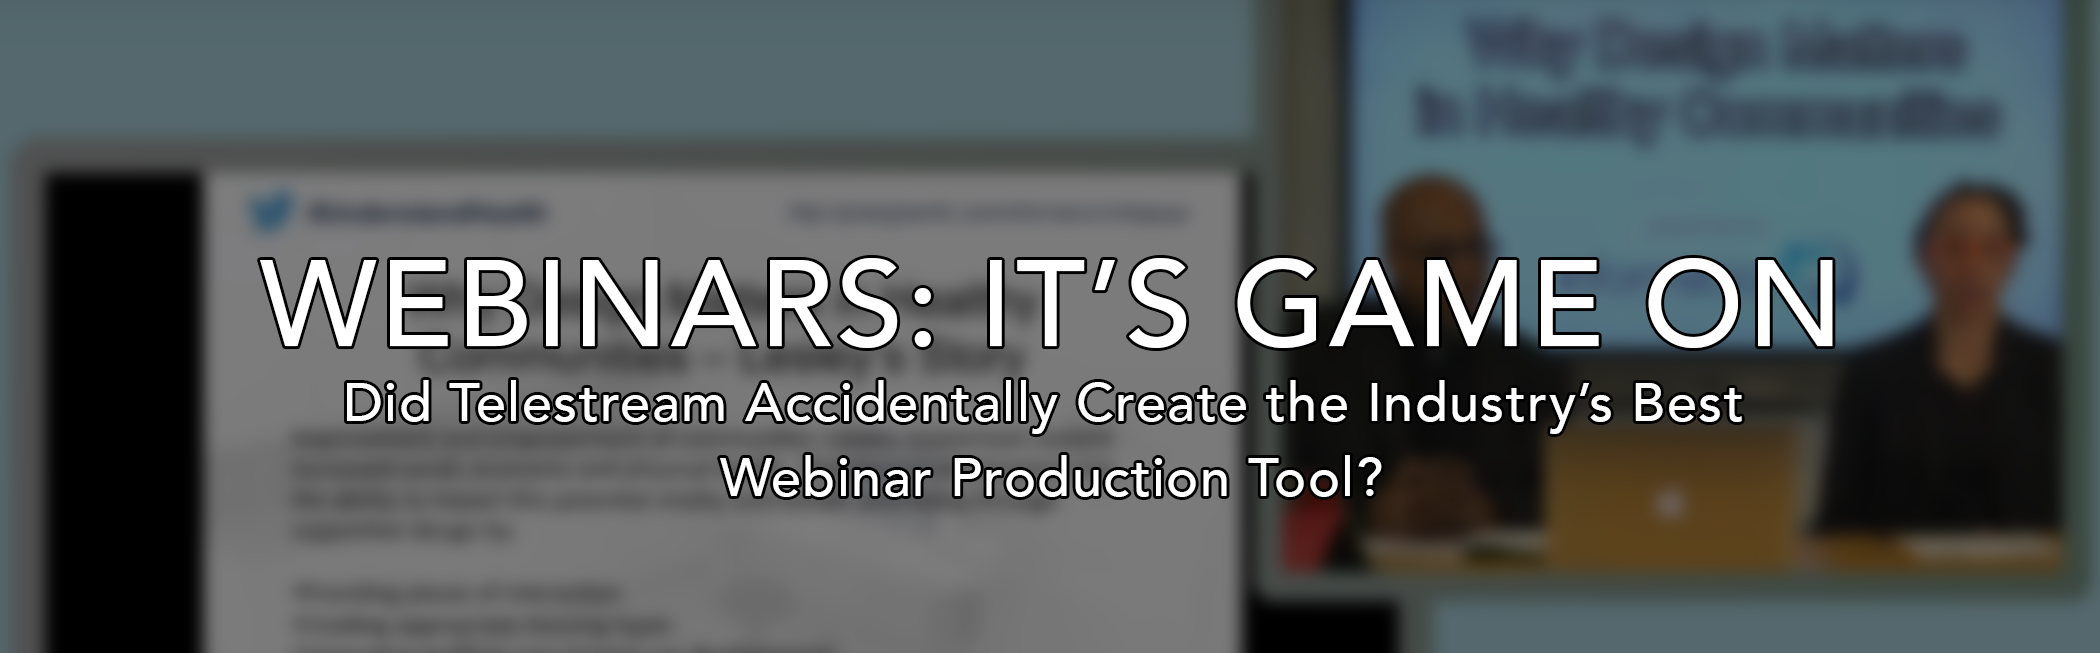 Did Telestream Accidentally Create the Industry's Best Webinar Production Tool?